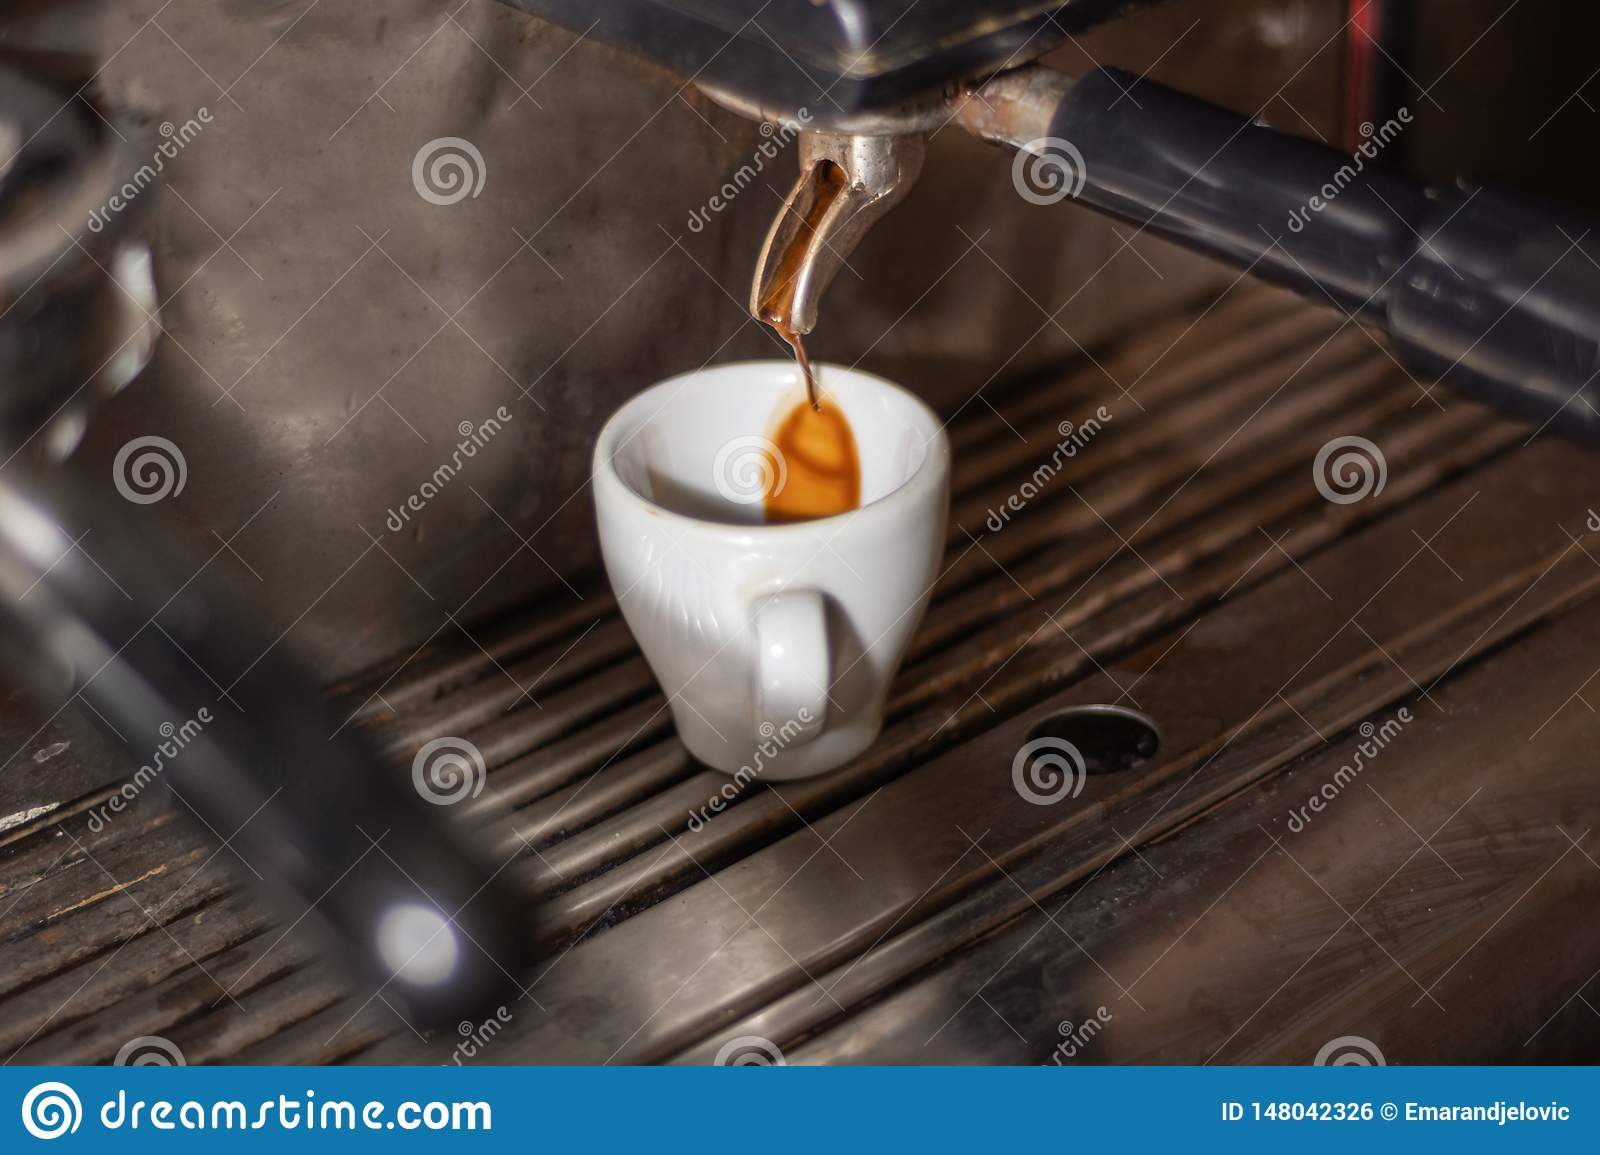 Coffee cup on an espresso machine and coffee drip in a cup